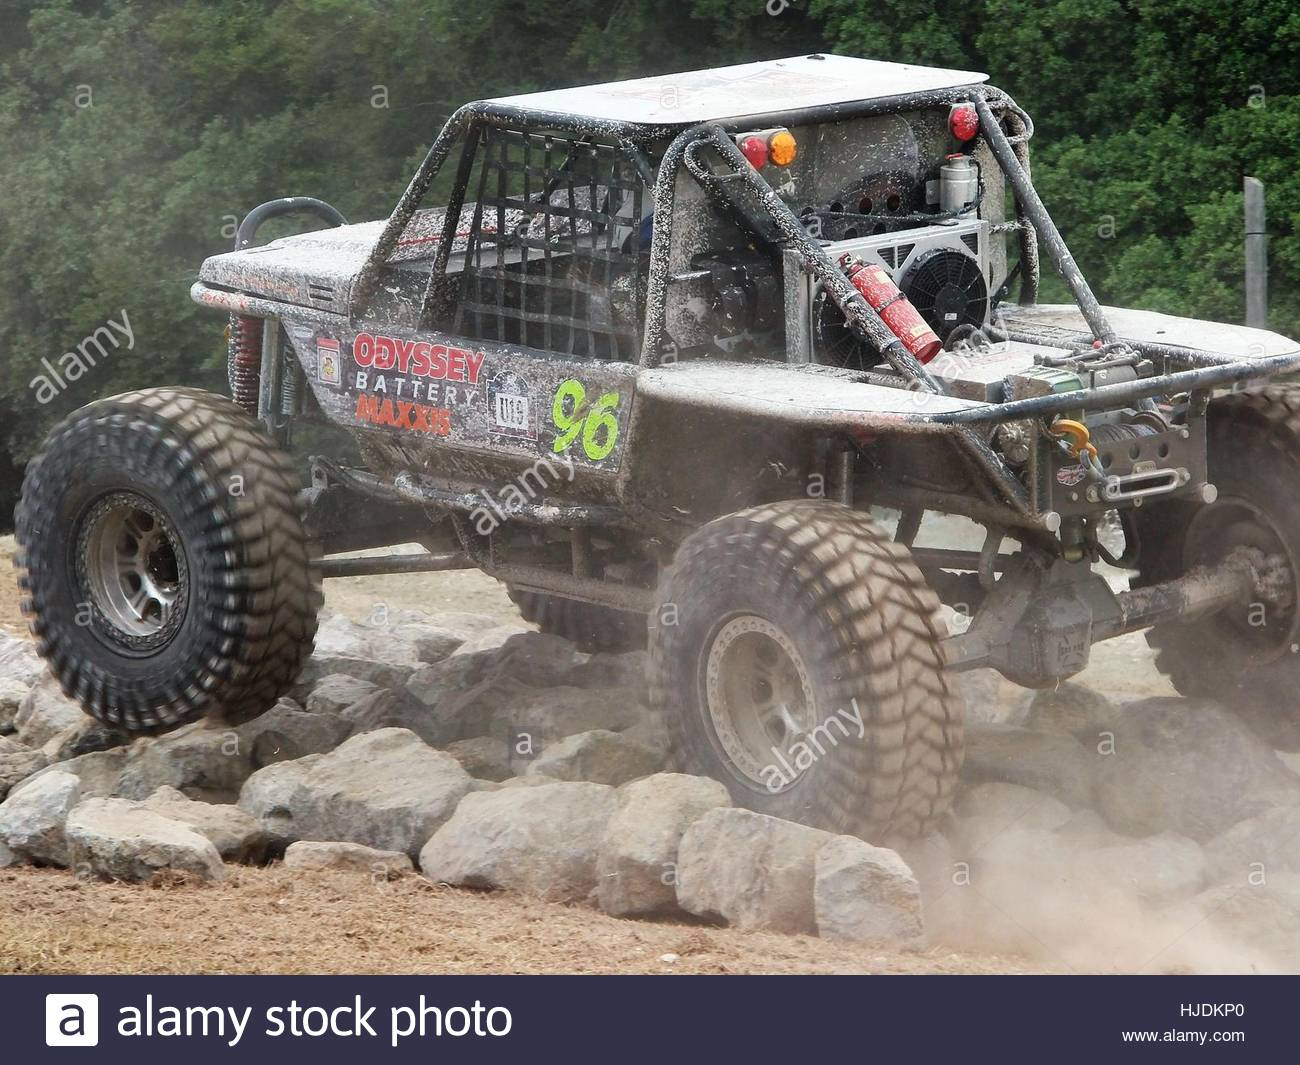 offroad truggy - Goodwood Festival of Speed - Stock Image